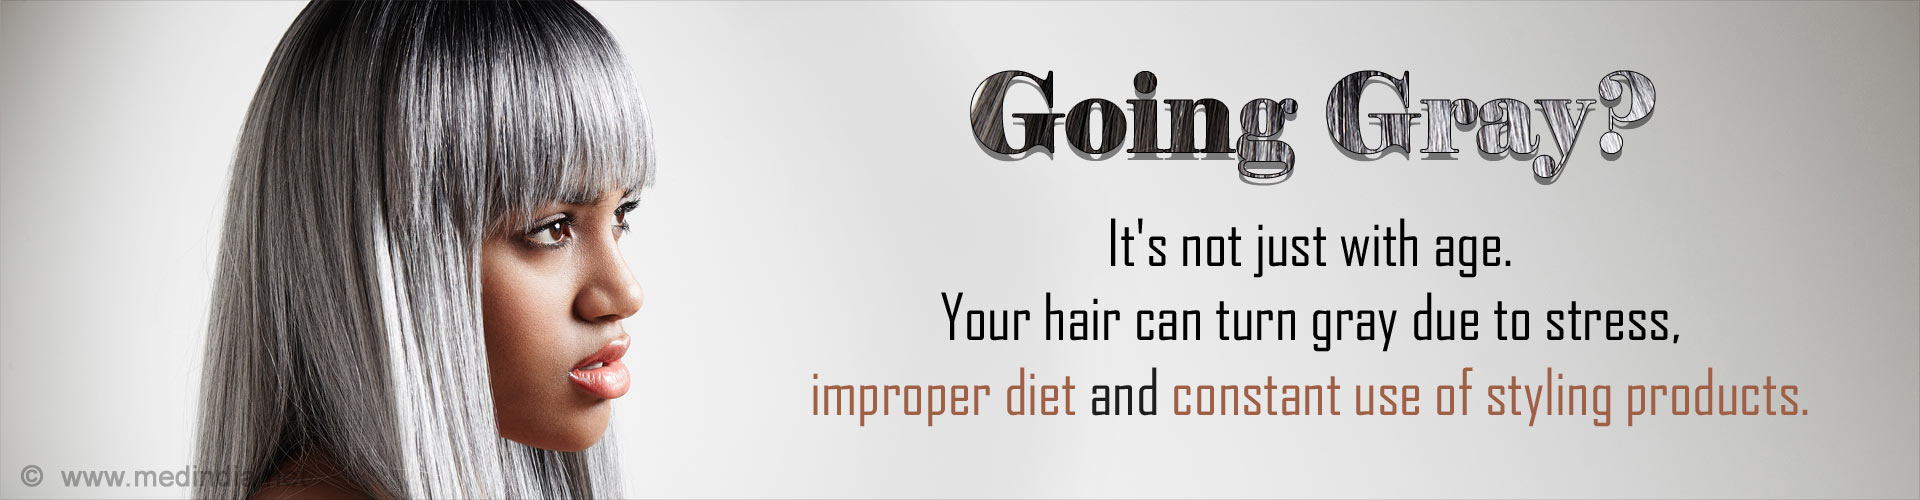 Going Gray? It's not just with age. Your hair can turn gray due to stress, improper diet and constant use of styling products.